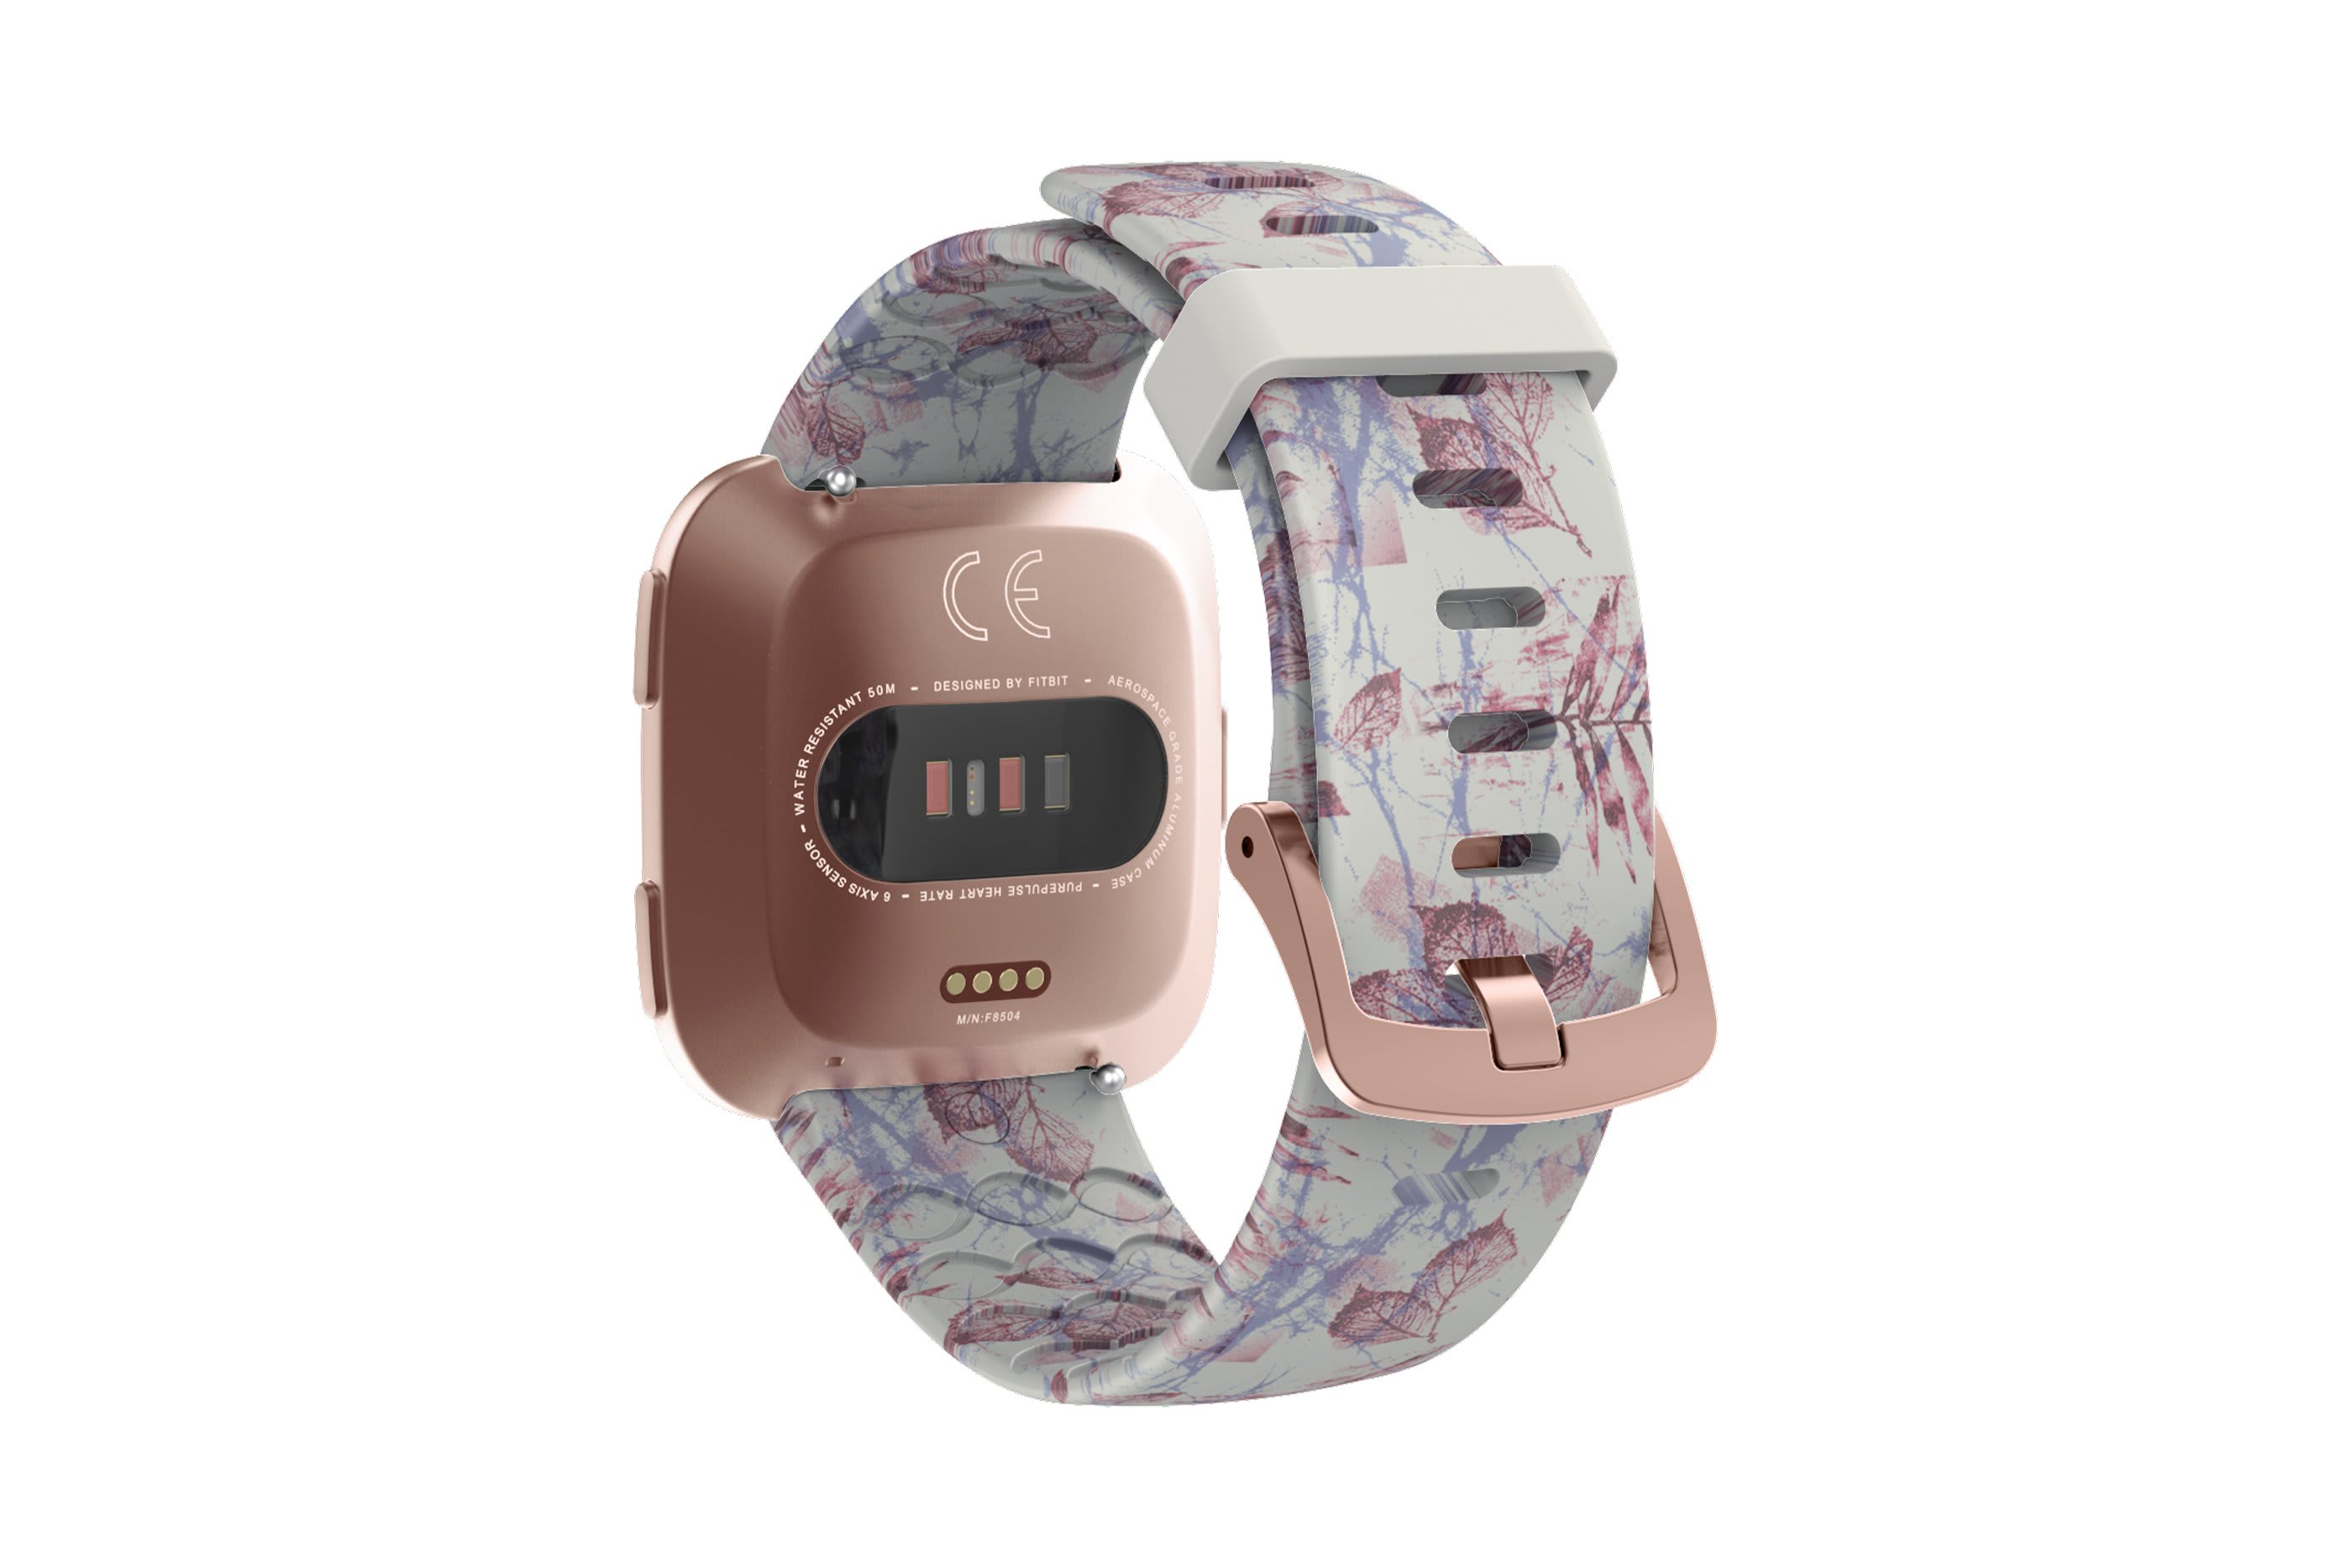 Breeze fitbit versa watch band with rose gold hardware viewed from top down